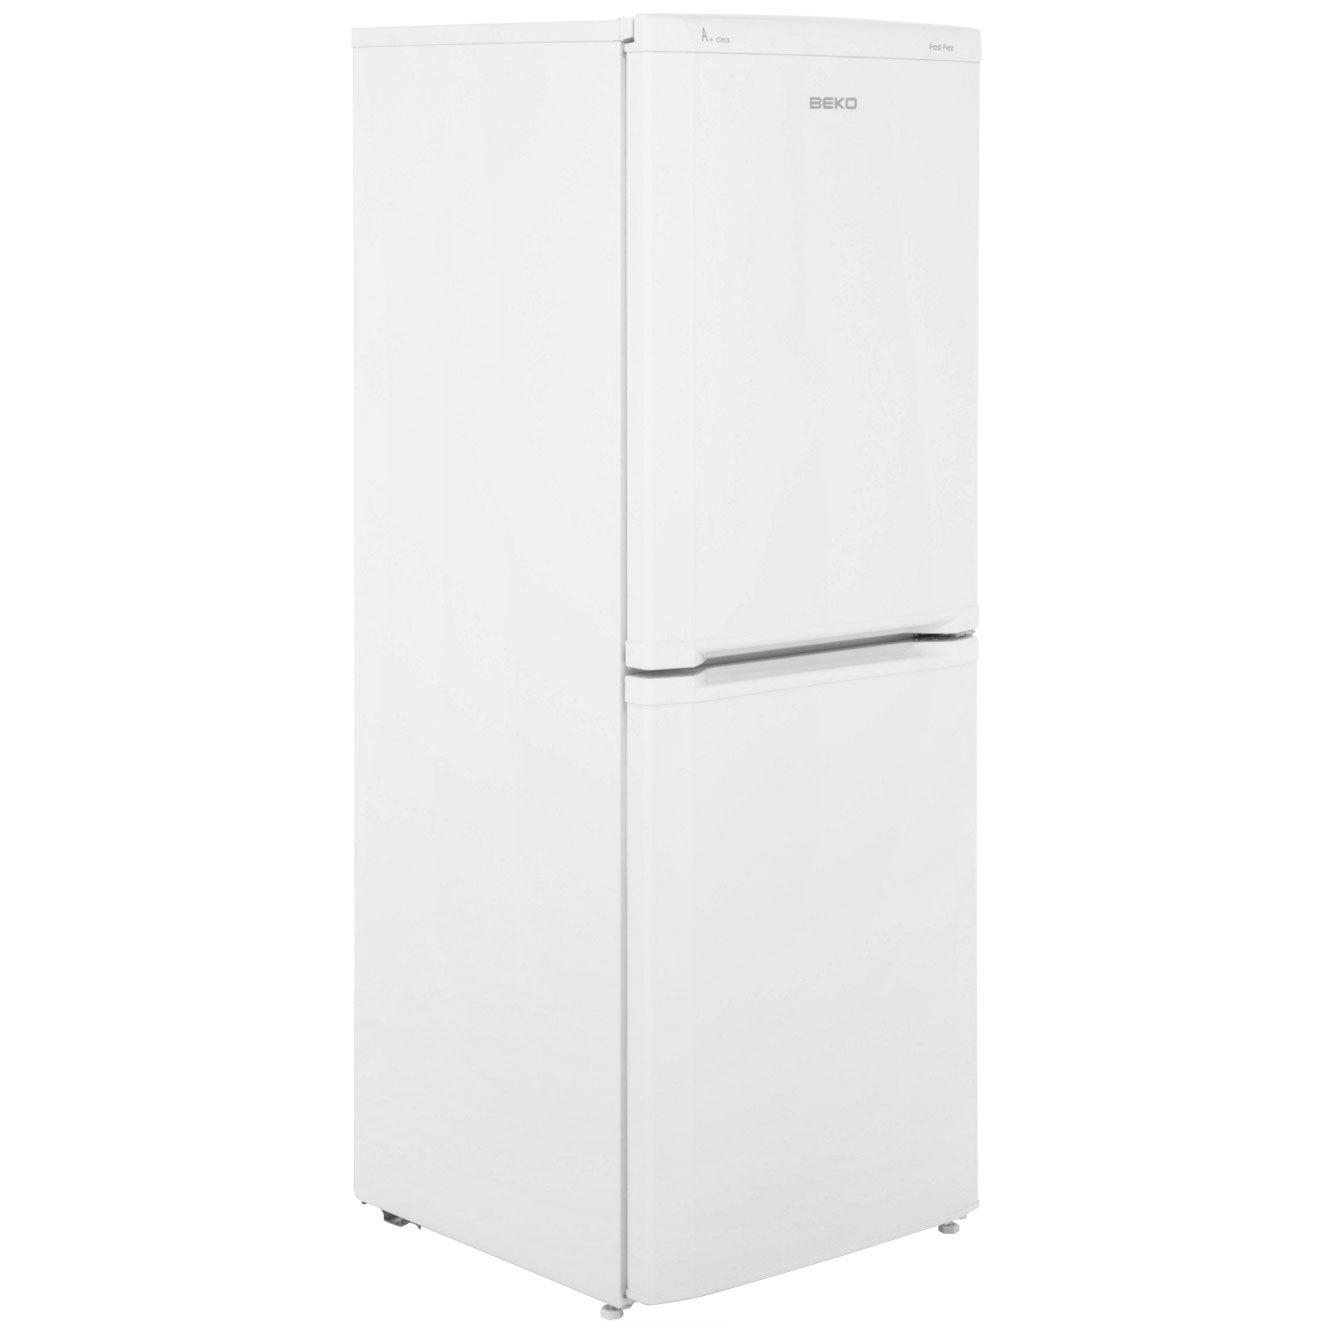 Beko CF5533APW 50/50 Frost Free Fridge Freezer - White